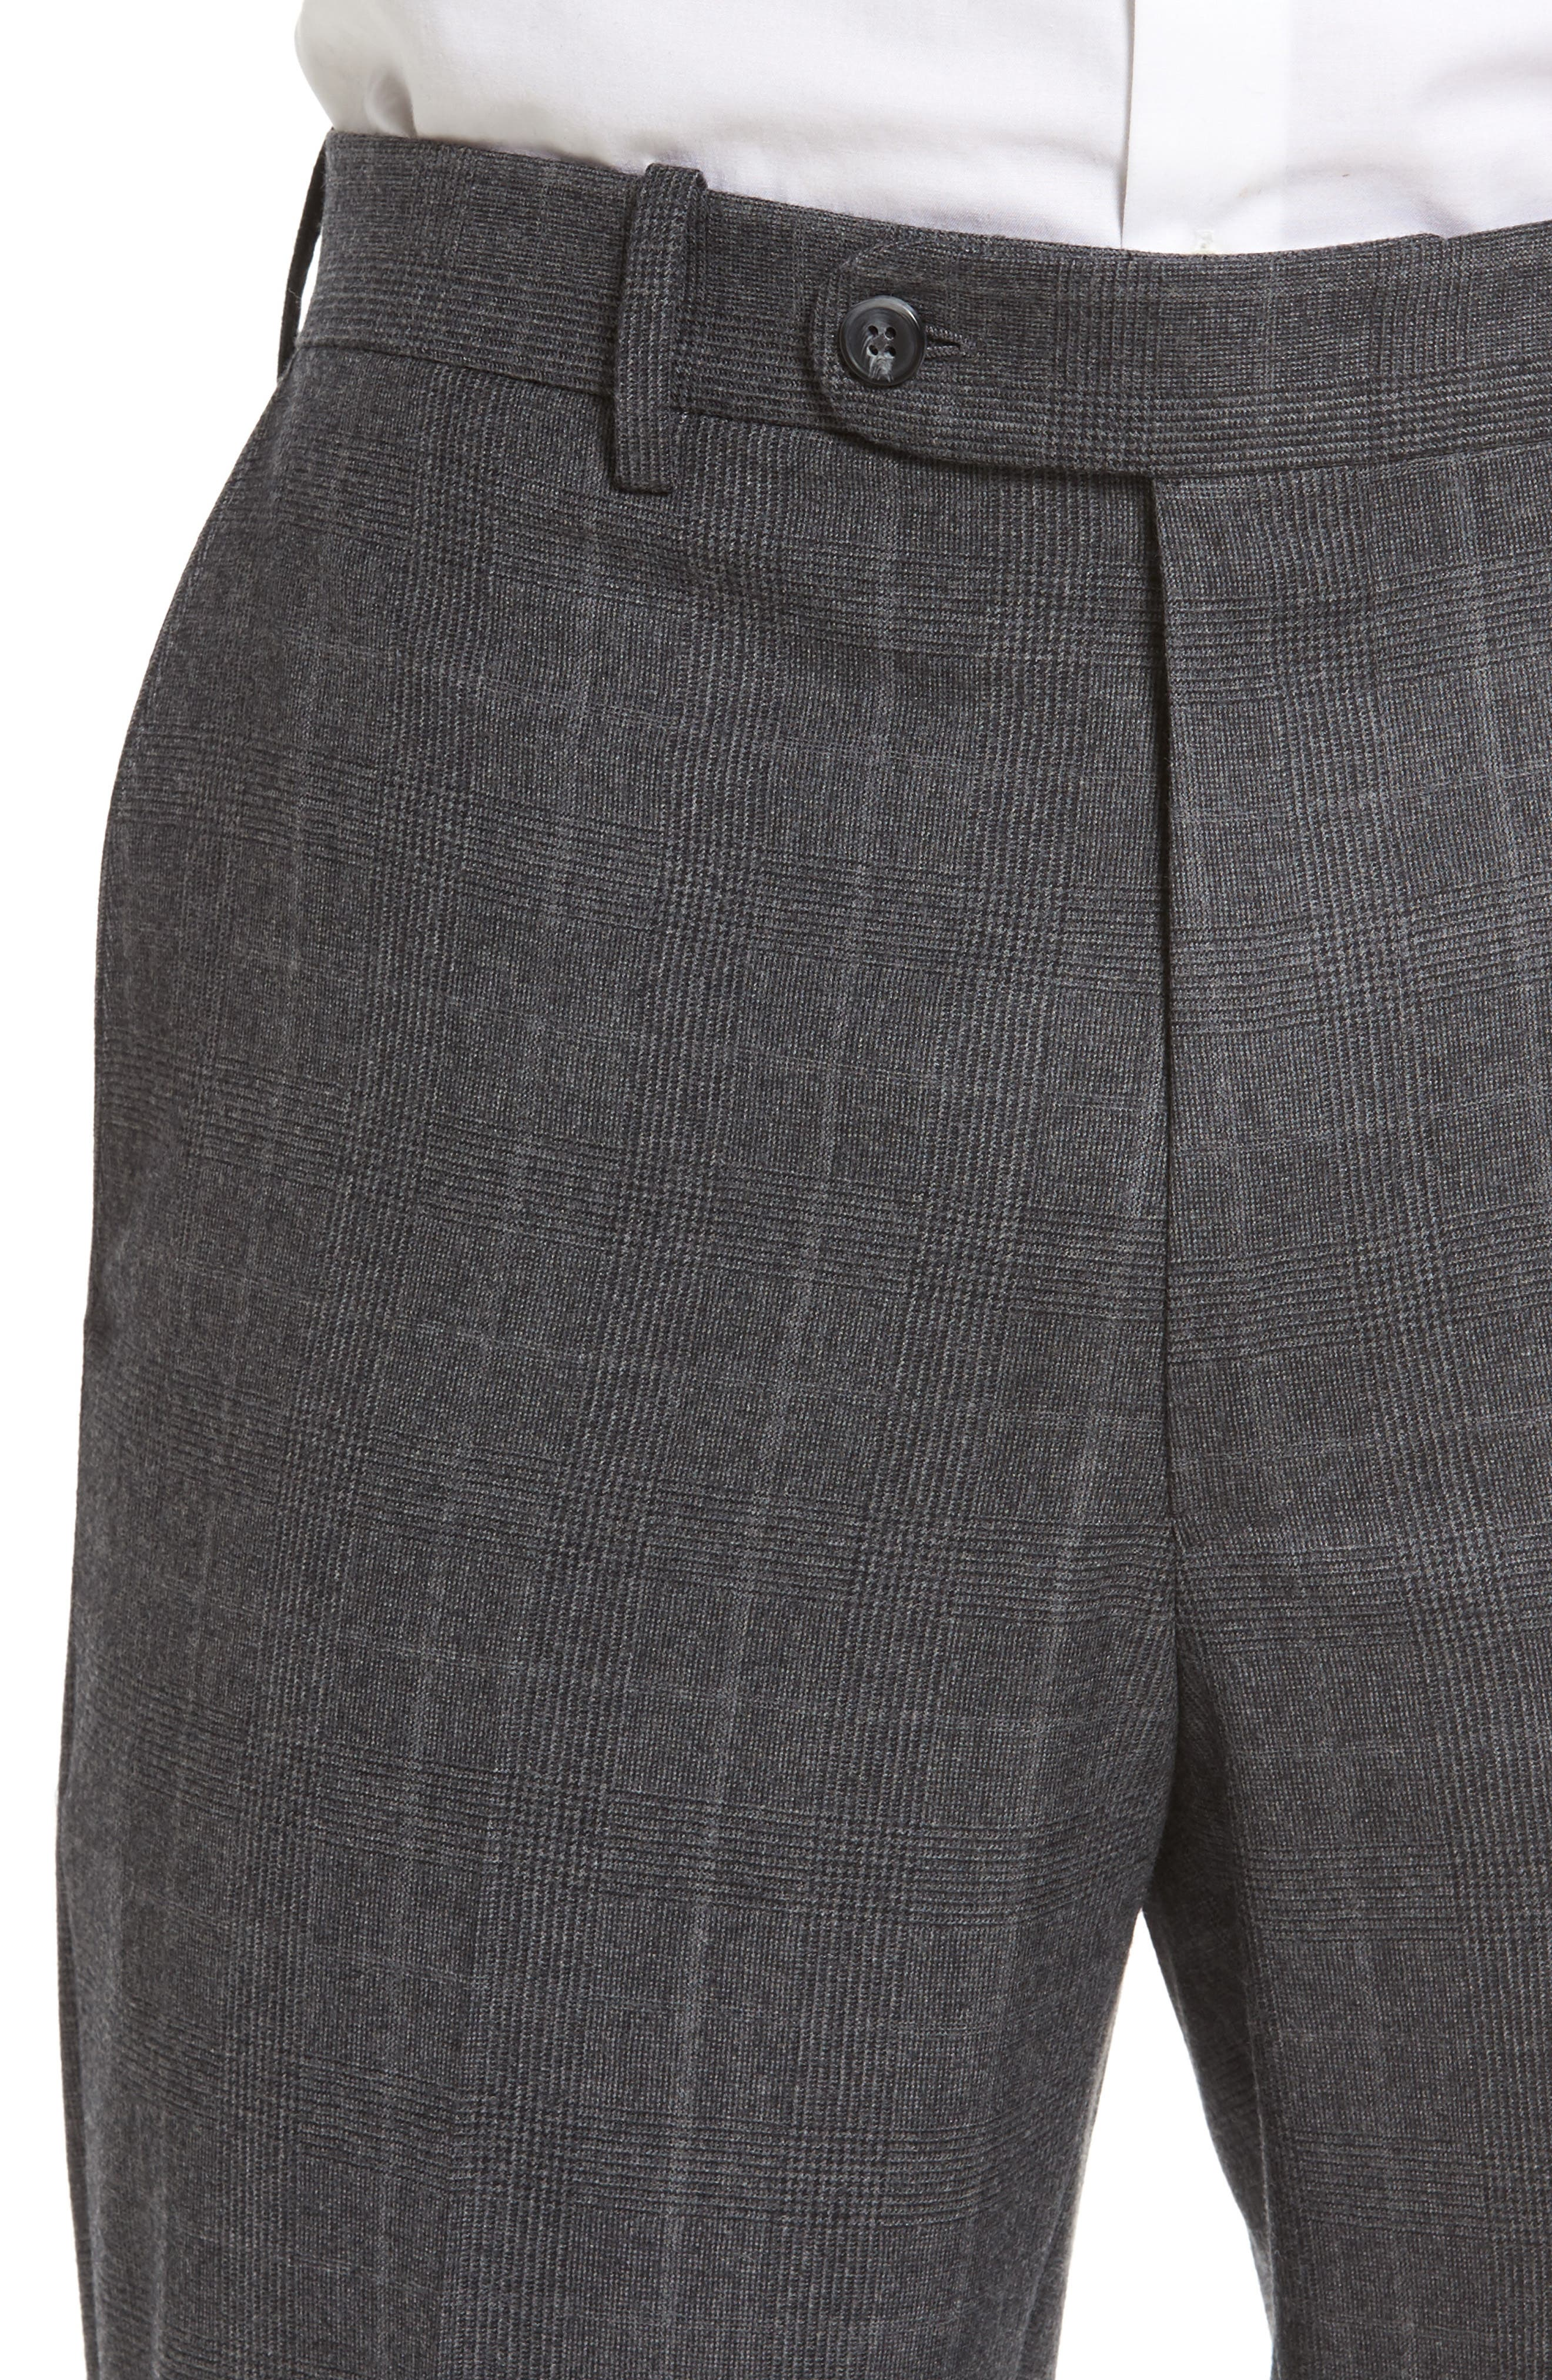 Flat Front Plaid Wool Trousers,                             Alternate thumbnail 5, color,                             032